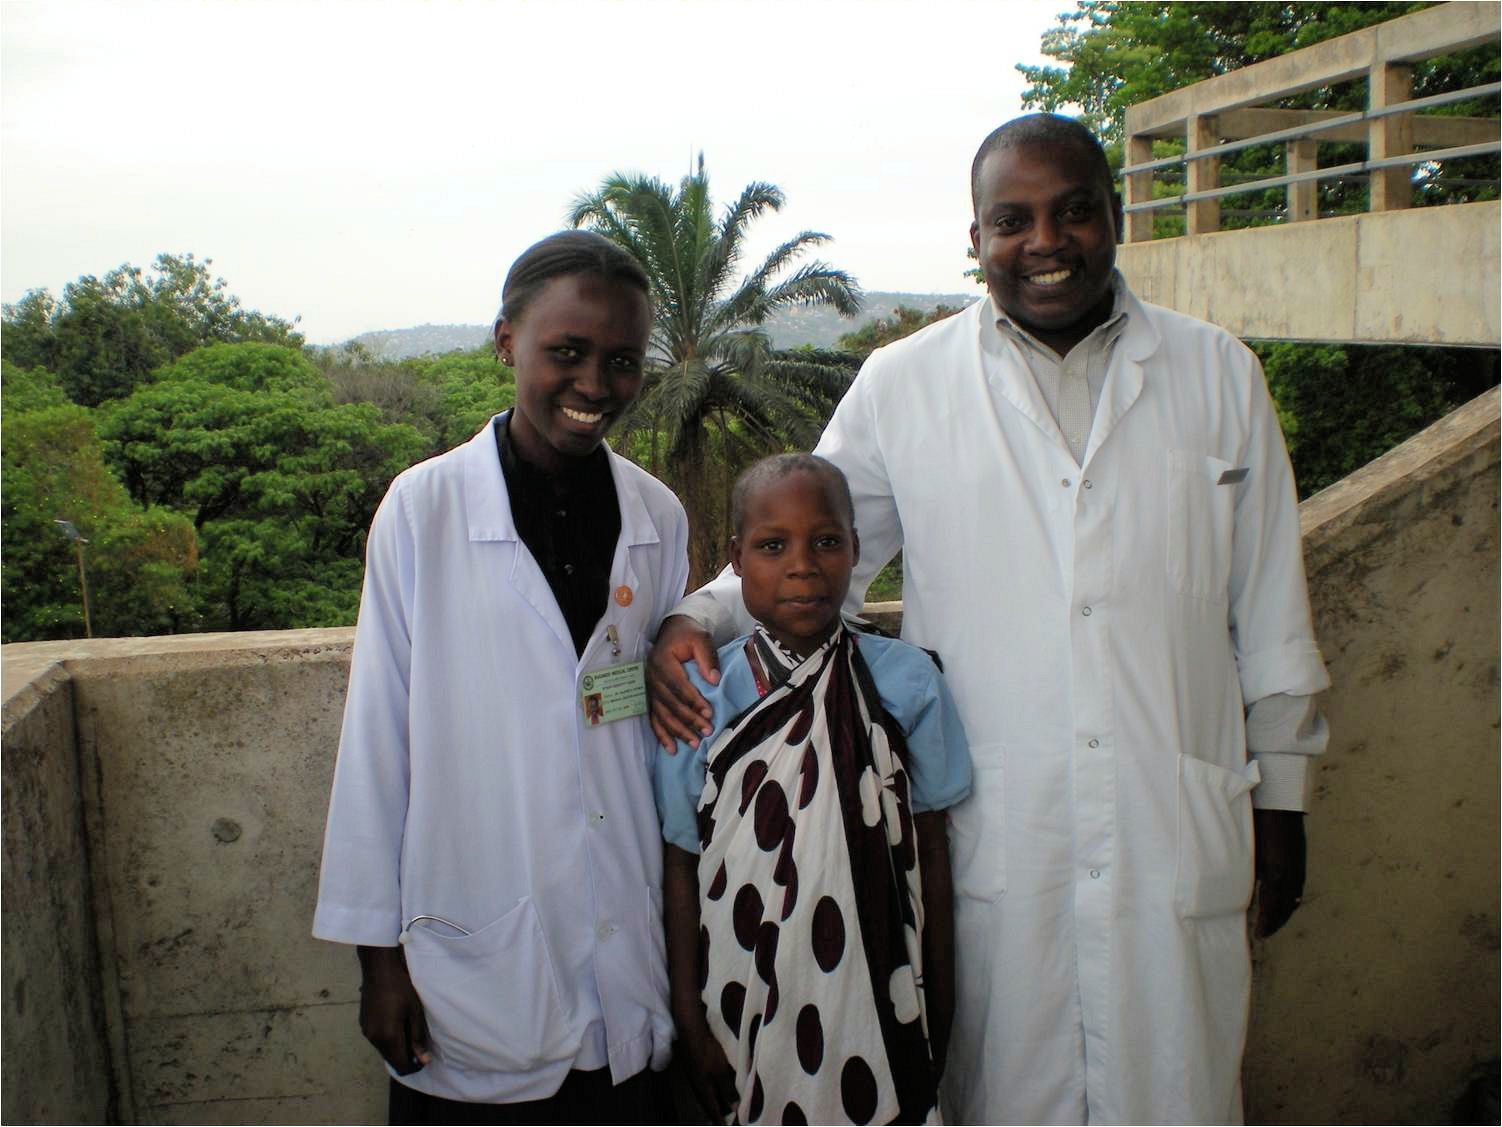 Dr-Nestori-and-young-patient-at-Bugando-Med-Cent.jpg